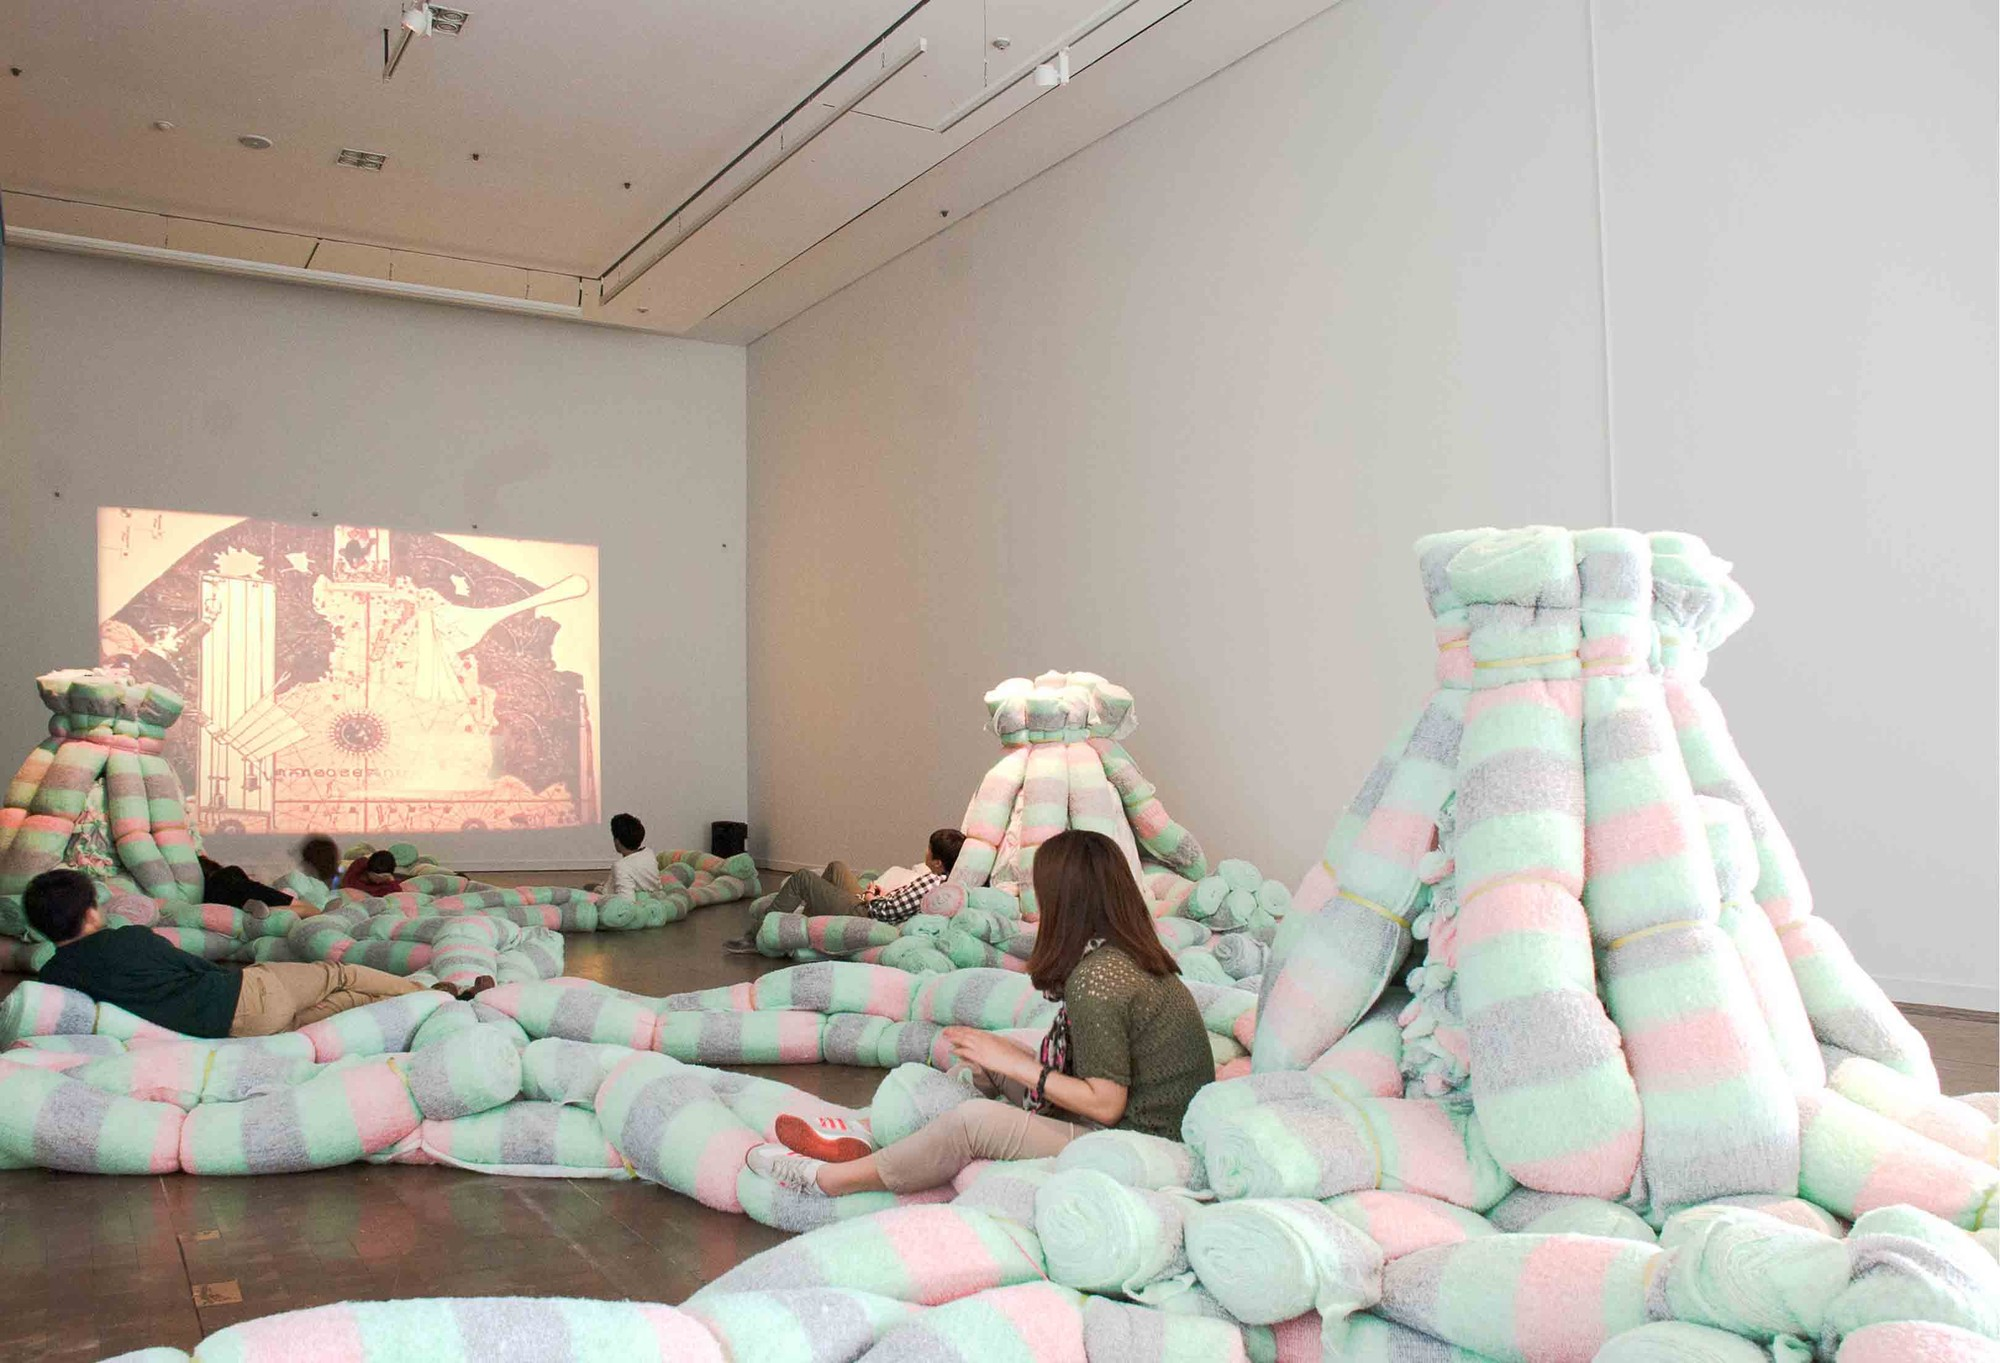 'Plushscape' Installation at Interspace Dialogue Exhibition / ALLTHATISSOLID